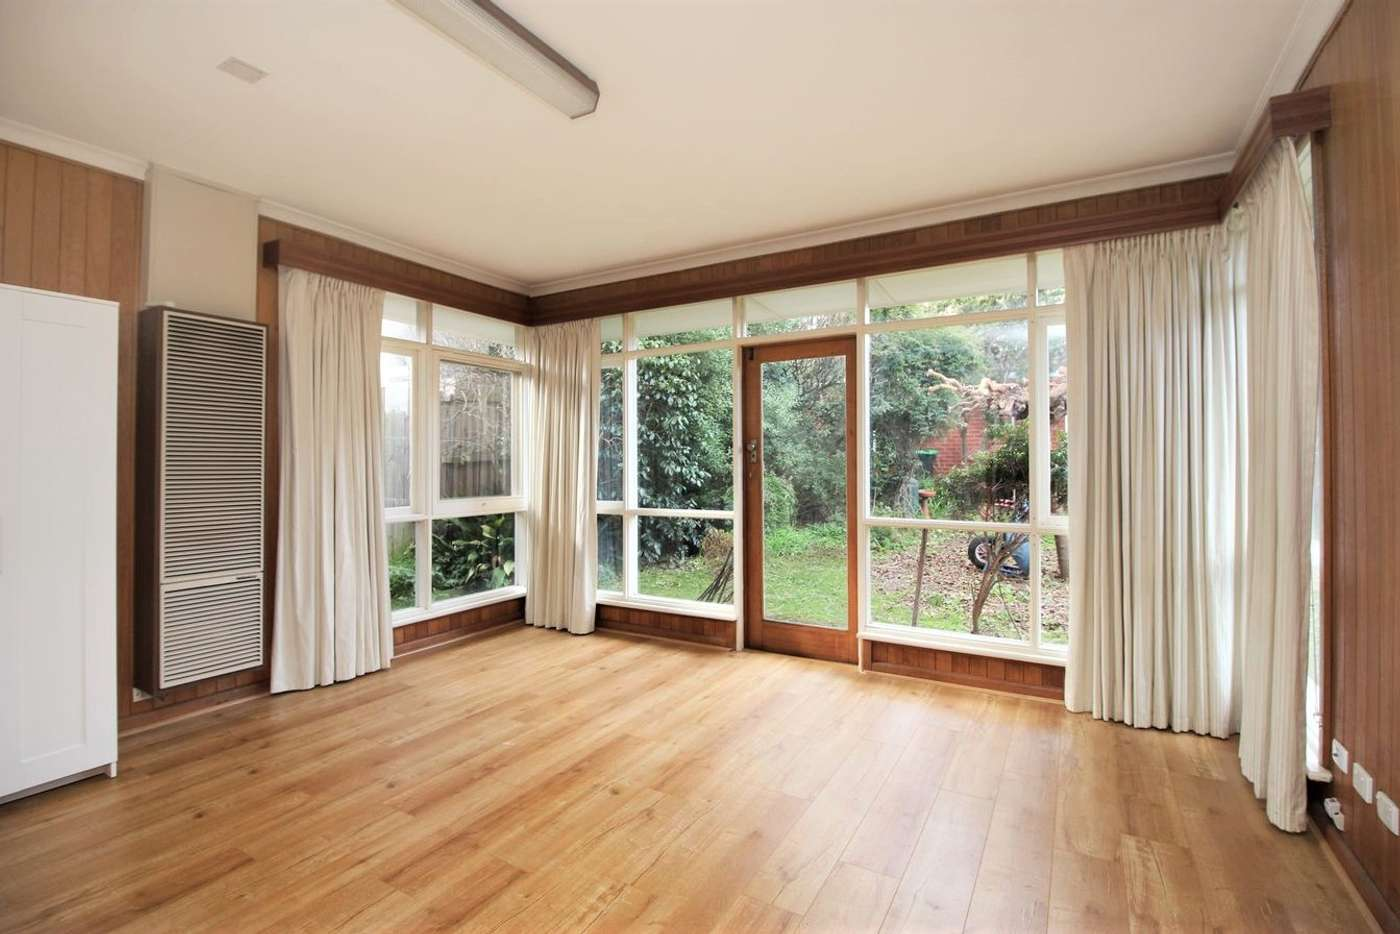 Seventh view of Homely house listing, 256 Elgar Rd, Box Hill South VIC 3128